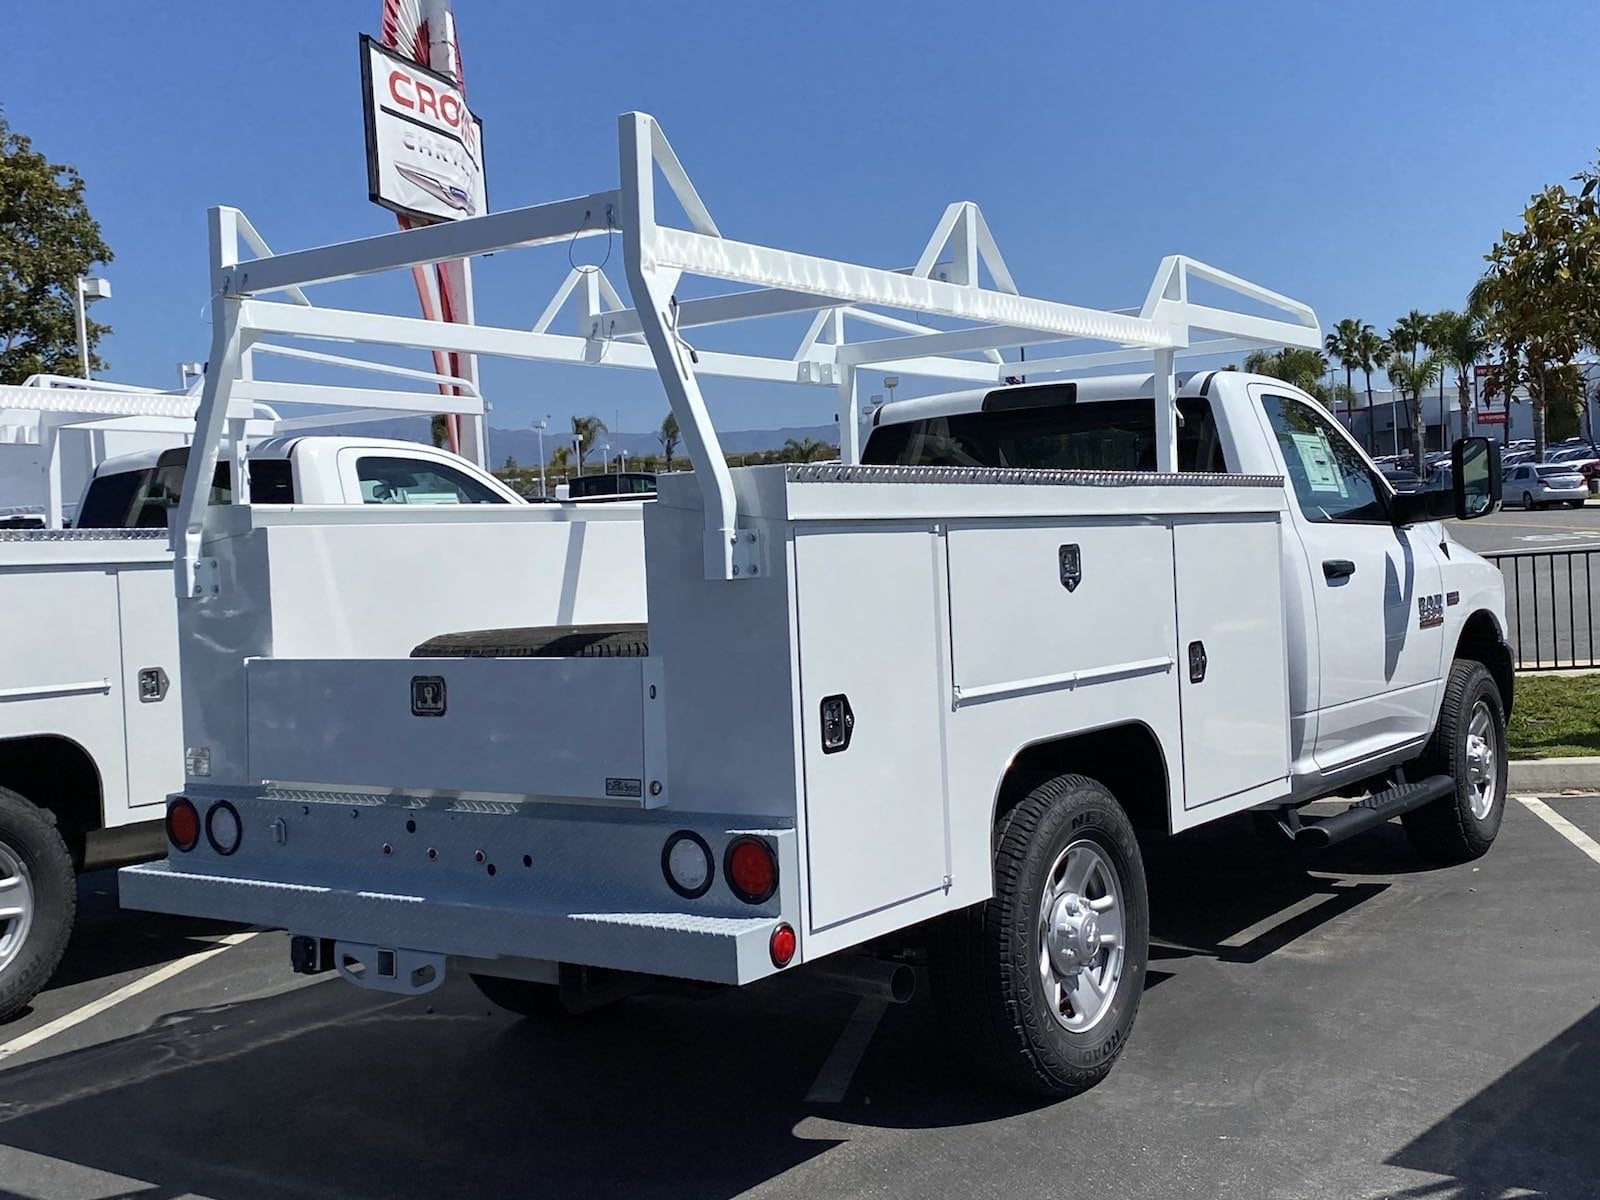 2018 Ram 3500 Regular Cab 4x2, Scelzi Service Body #E3238 - photo 1